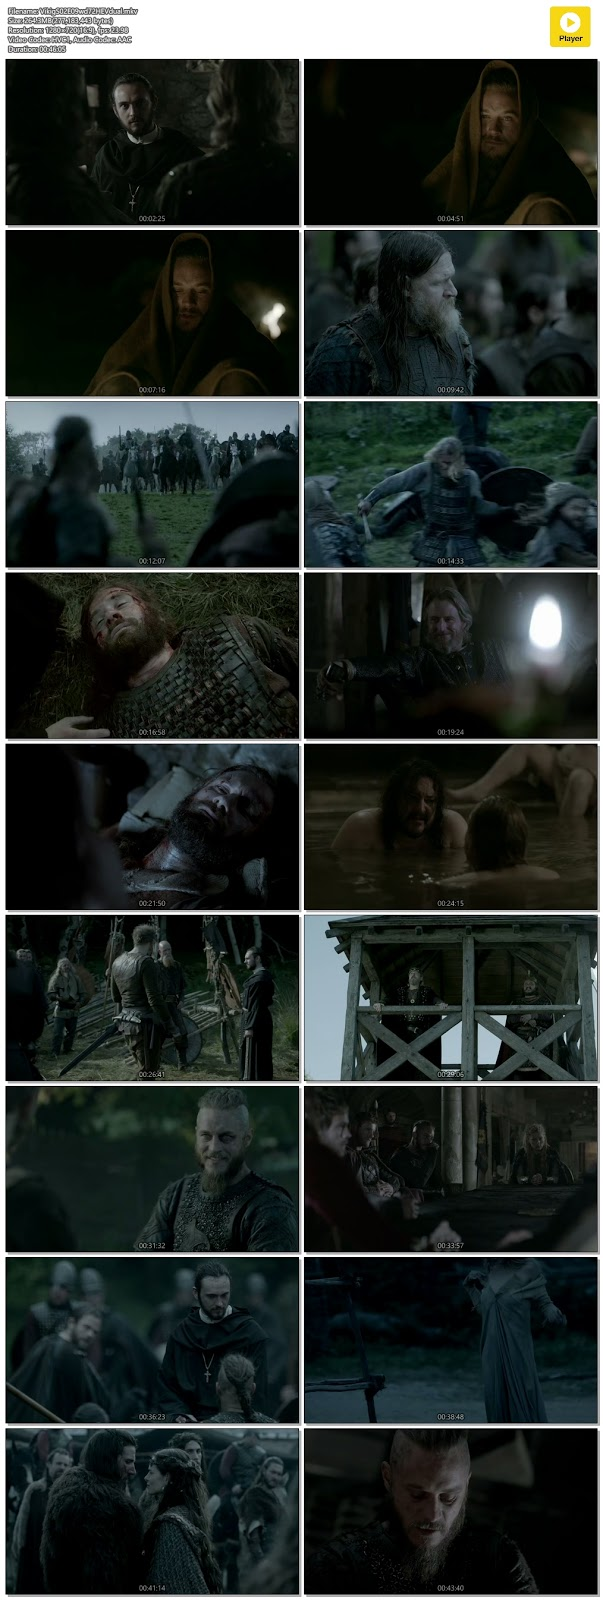 Vikings S02 Dual Audio Complete Series 720p BRRip x265